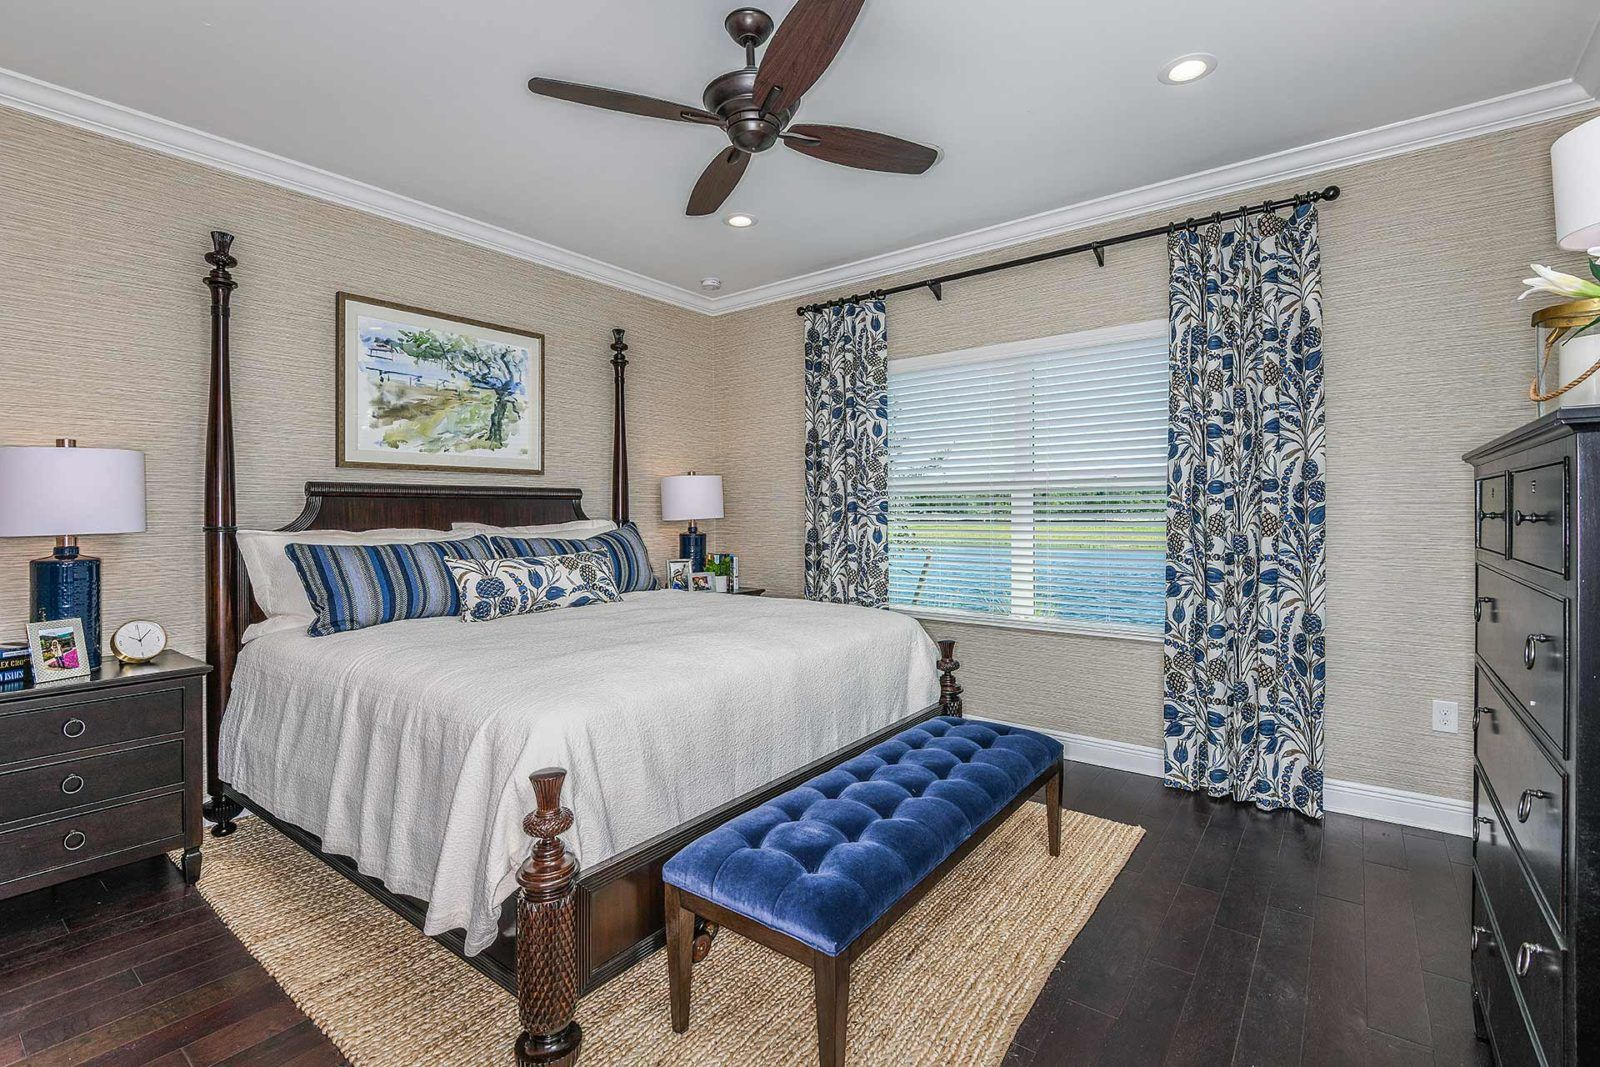 Bedroom featured in the Tidewinds By Neal Communities in Naples, FL